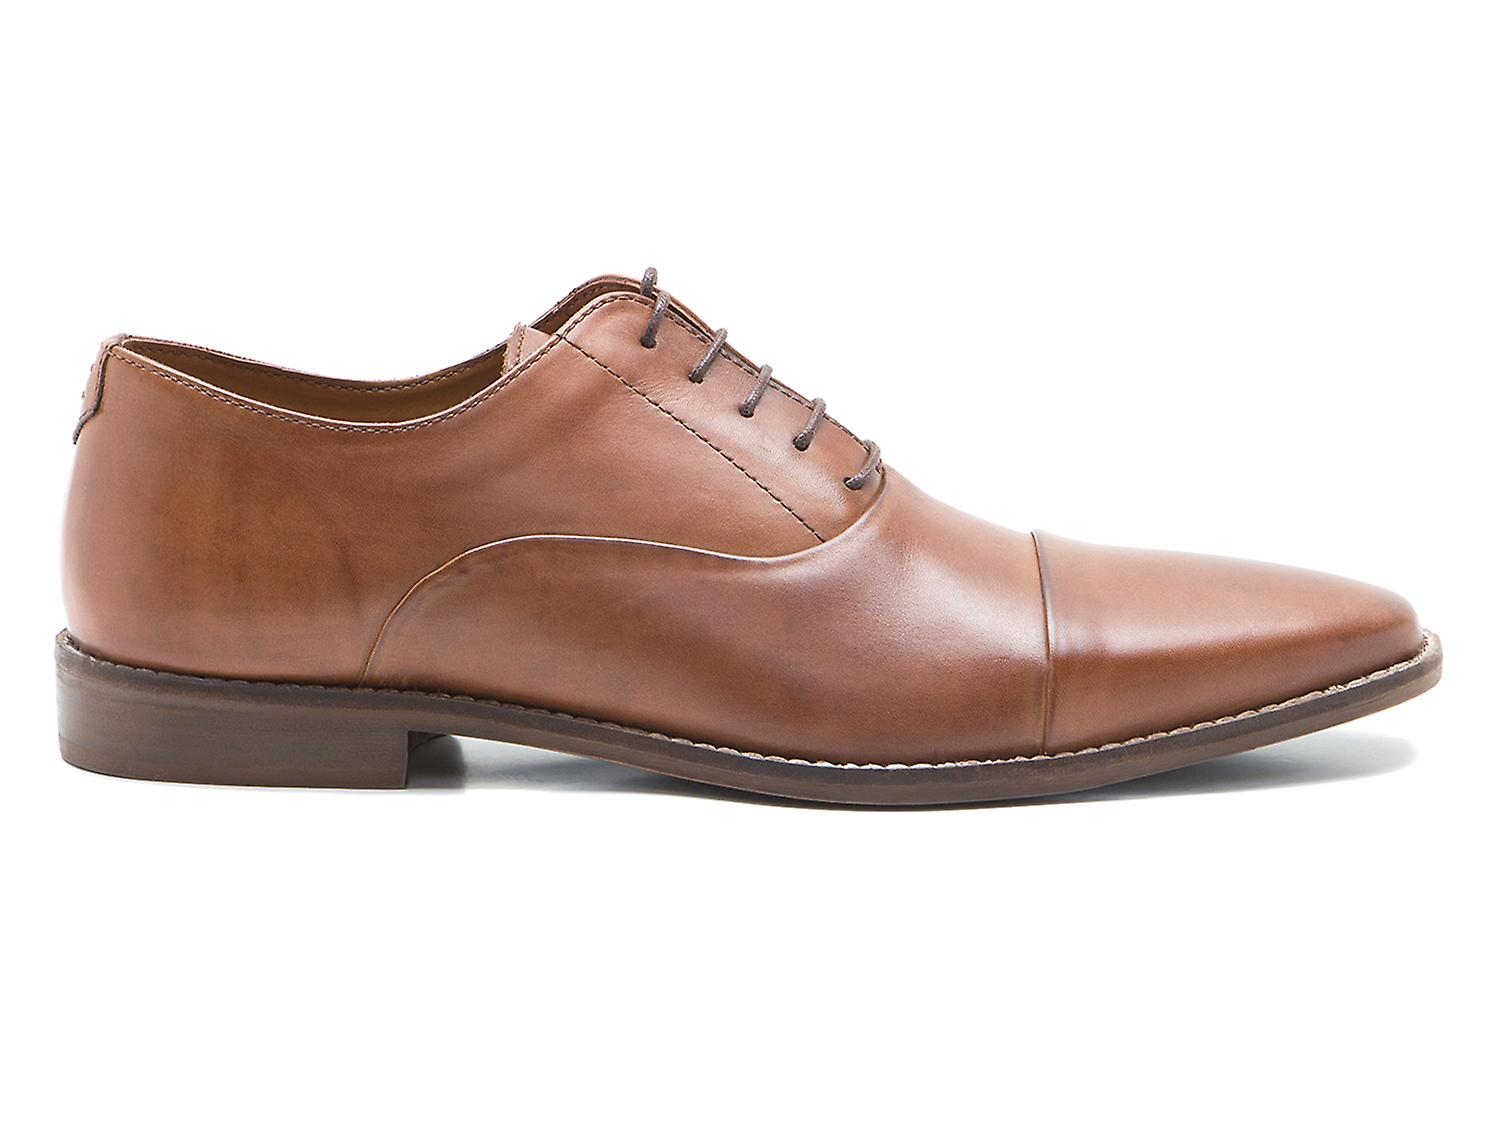 Red Tape Stanton Tan Men's Leather Lace-Up Formal Shoes